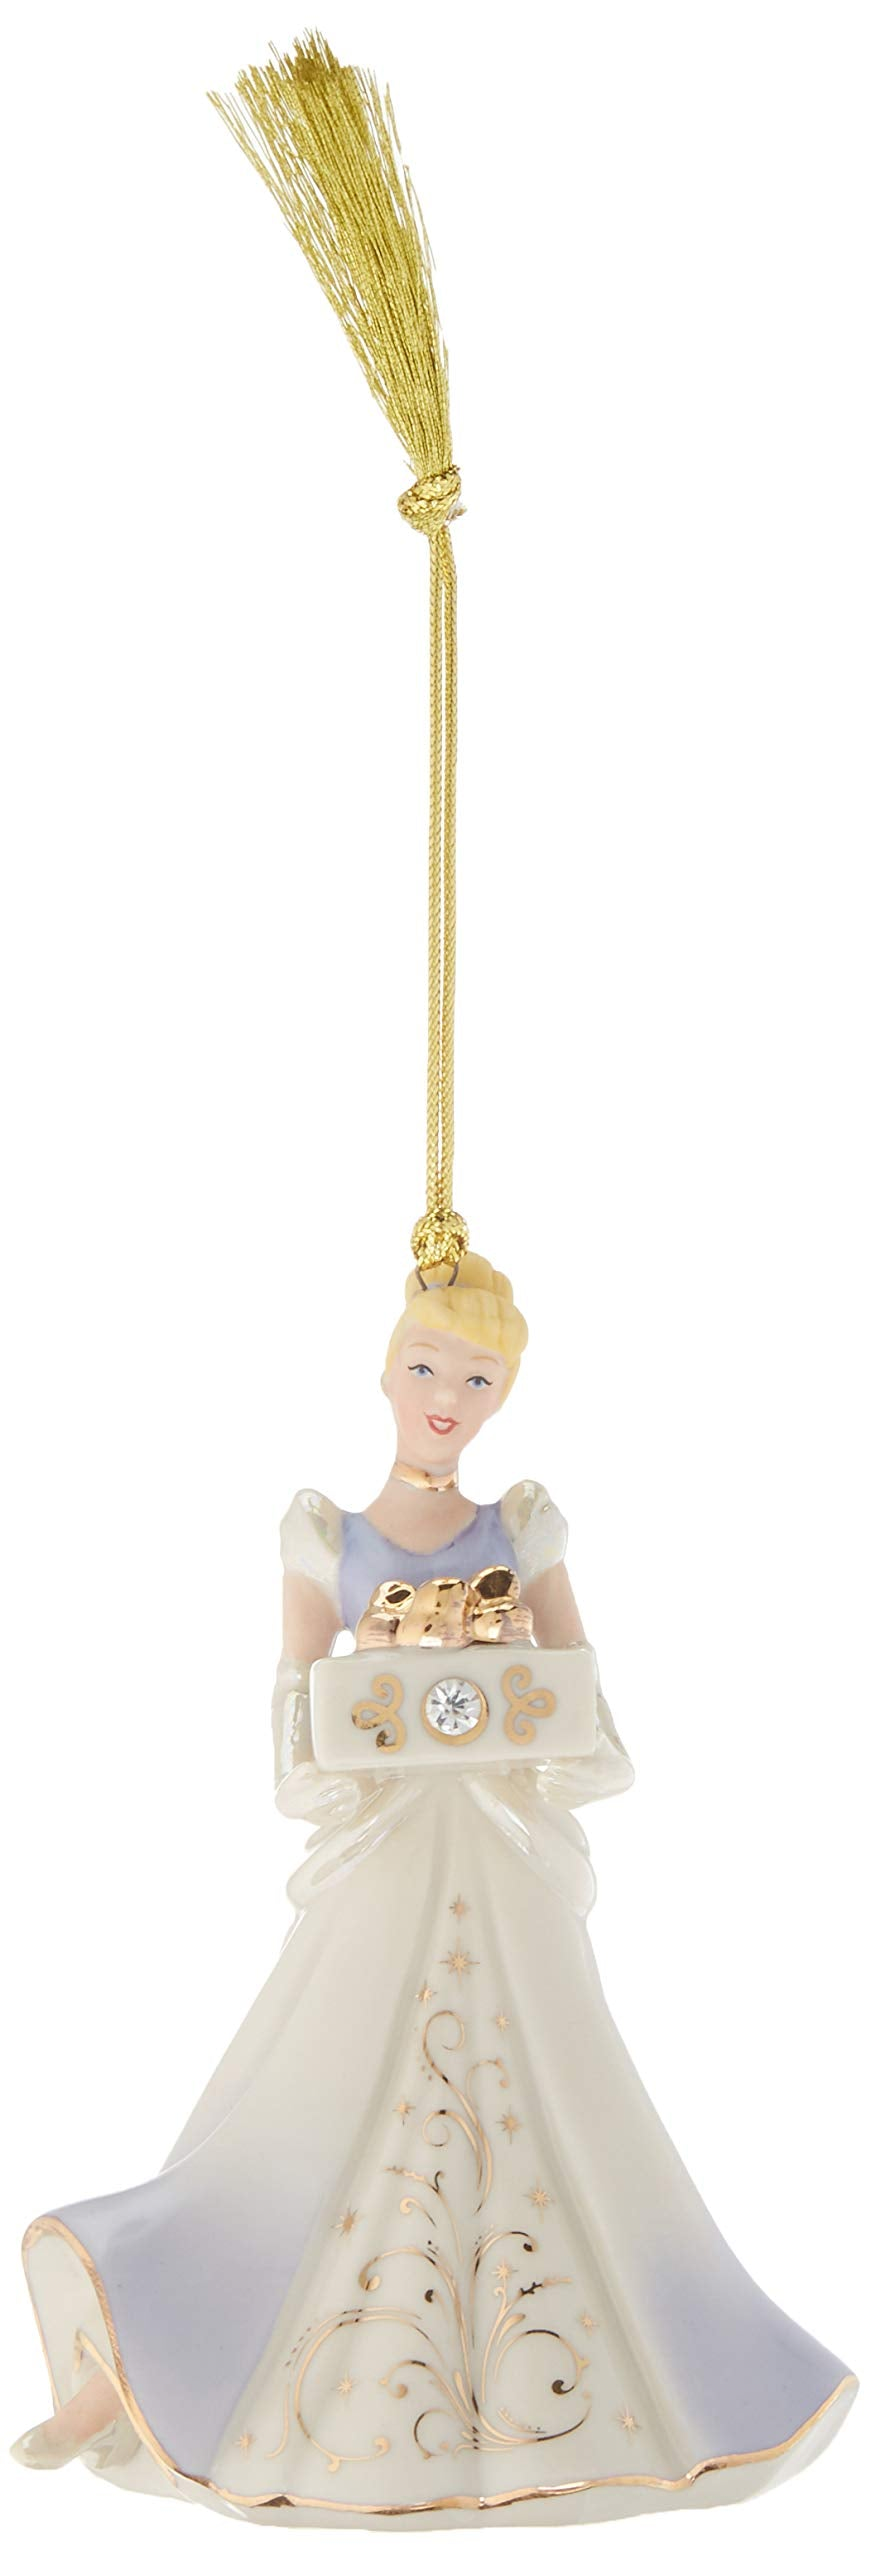 Lenox Princess Cinderella Ornament